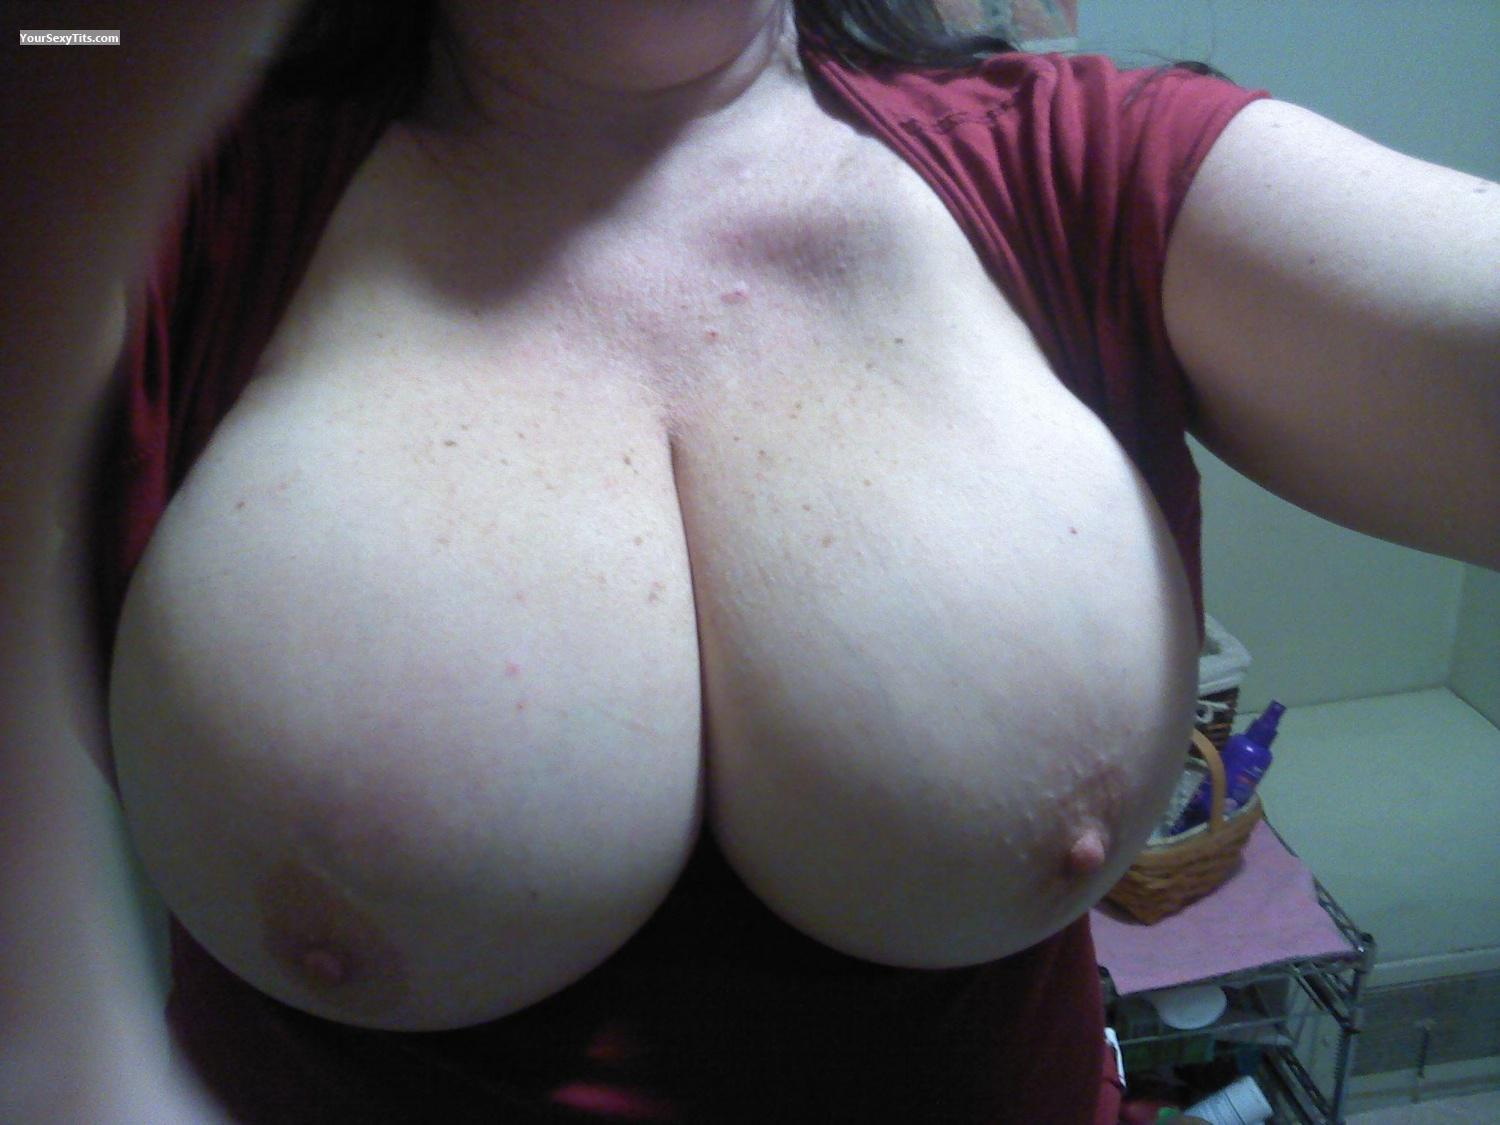 My Big Tits Selfie by Jennifer18